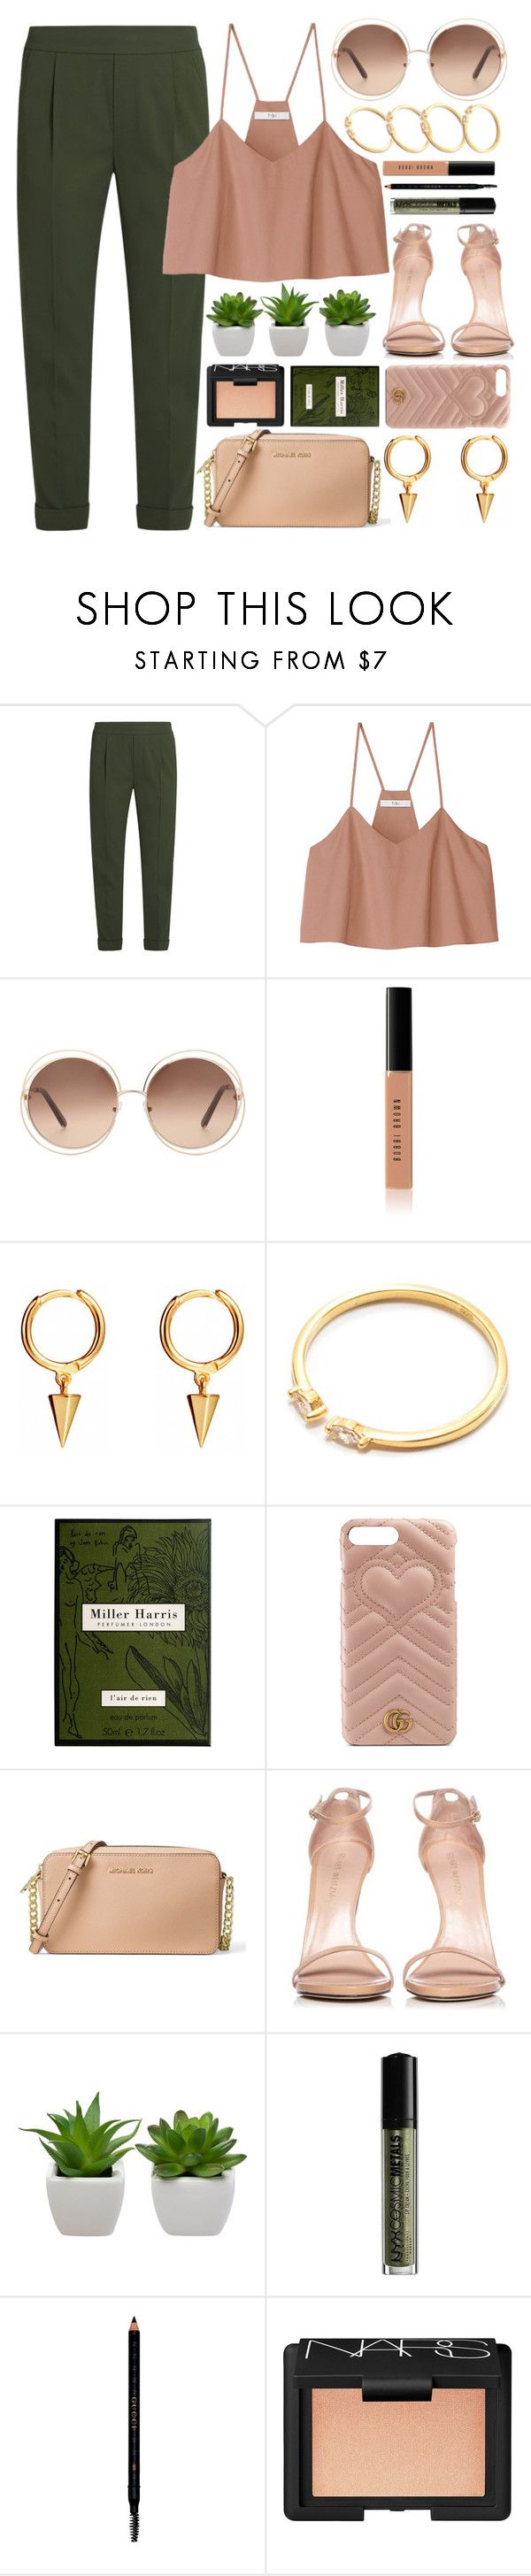 """Adana"" by monmondefou ❤ liked on Polyvore featuring Vince, TIBI, Chloé, Bobbi Brown Cosmetics, Miller Harris, Gucci, MICHAEL Michael Kors, Stuart Weitzman, NYX and NARS Cosmetics"